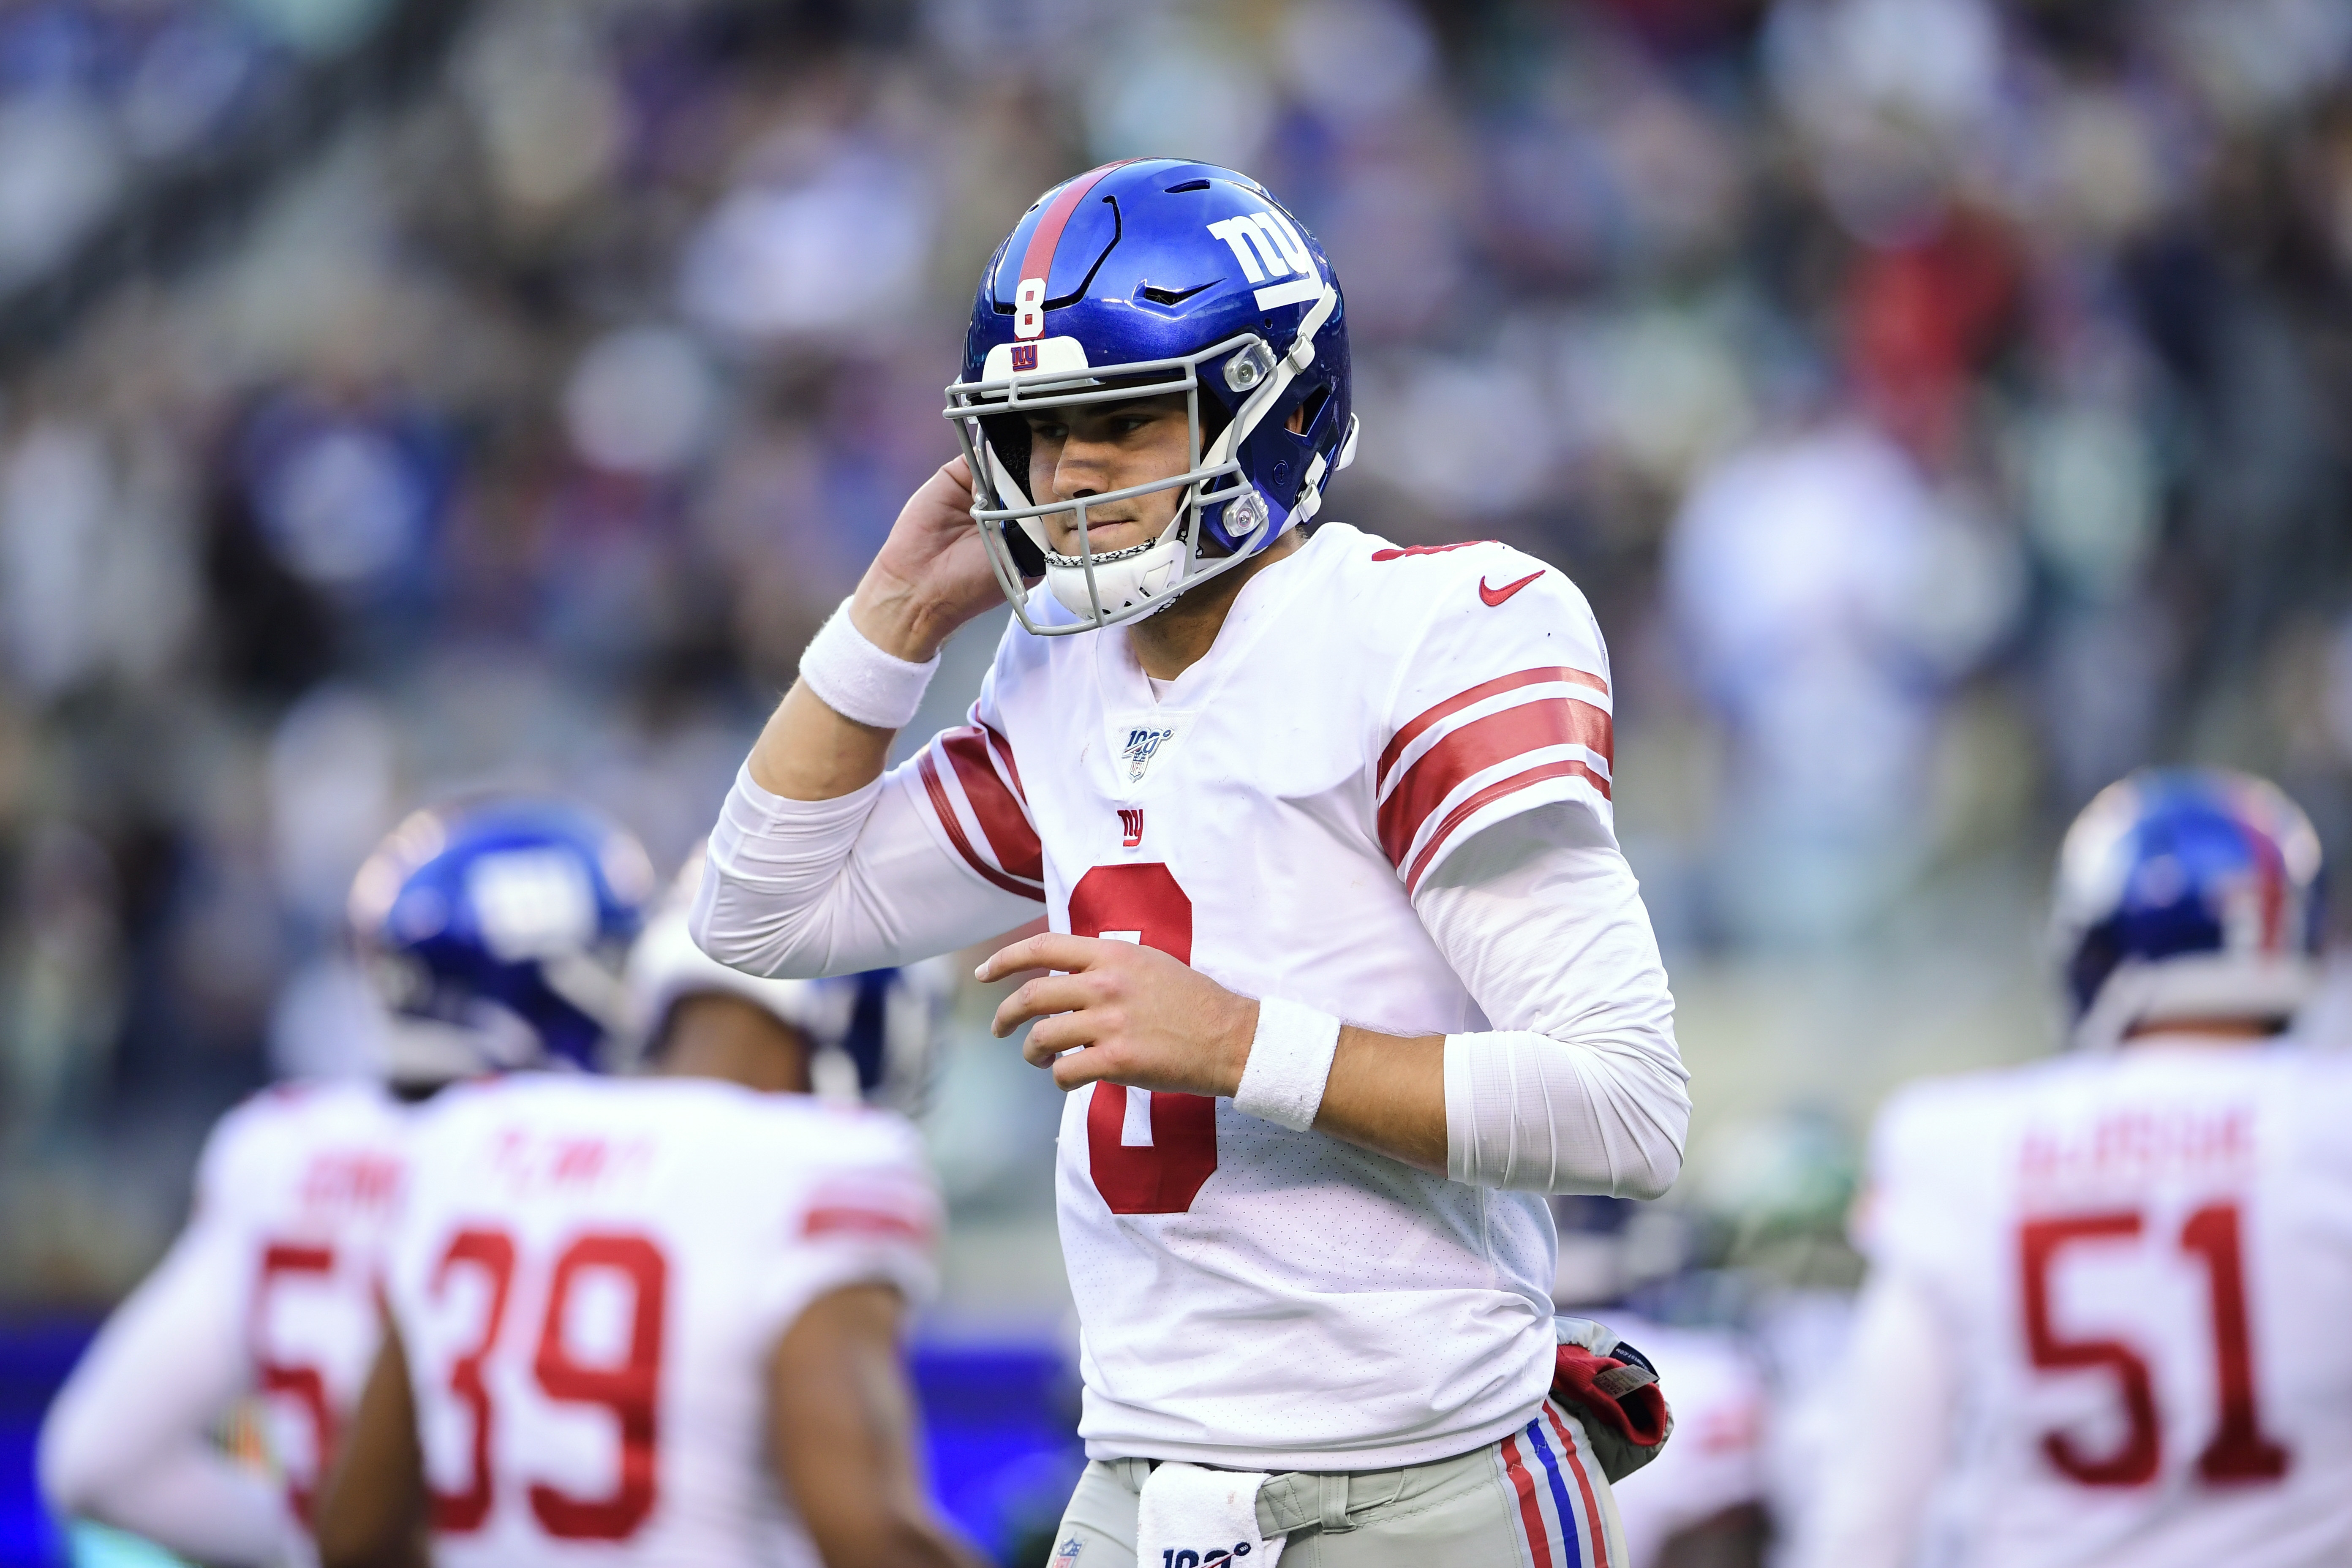 If Giants' Daniel Jones doesn't play again this season due to high ankle sprain, here's what he must do to improve in 2020